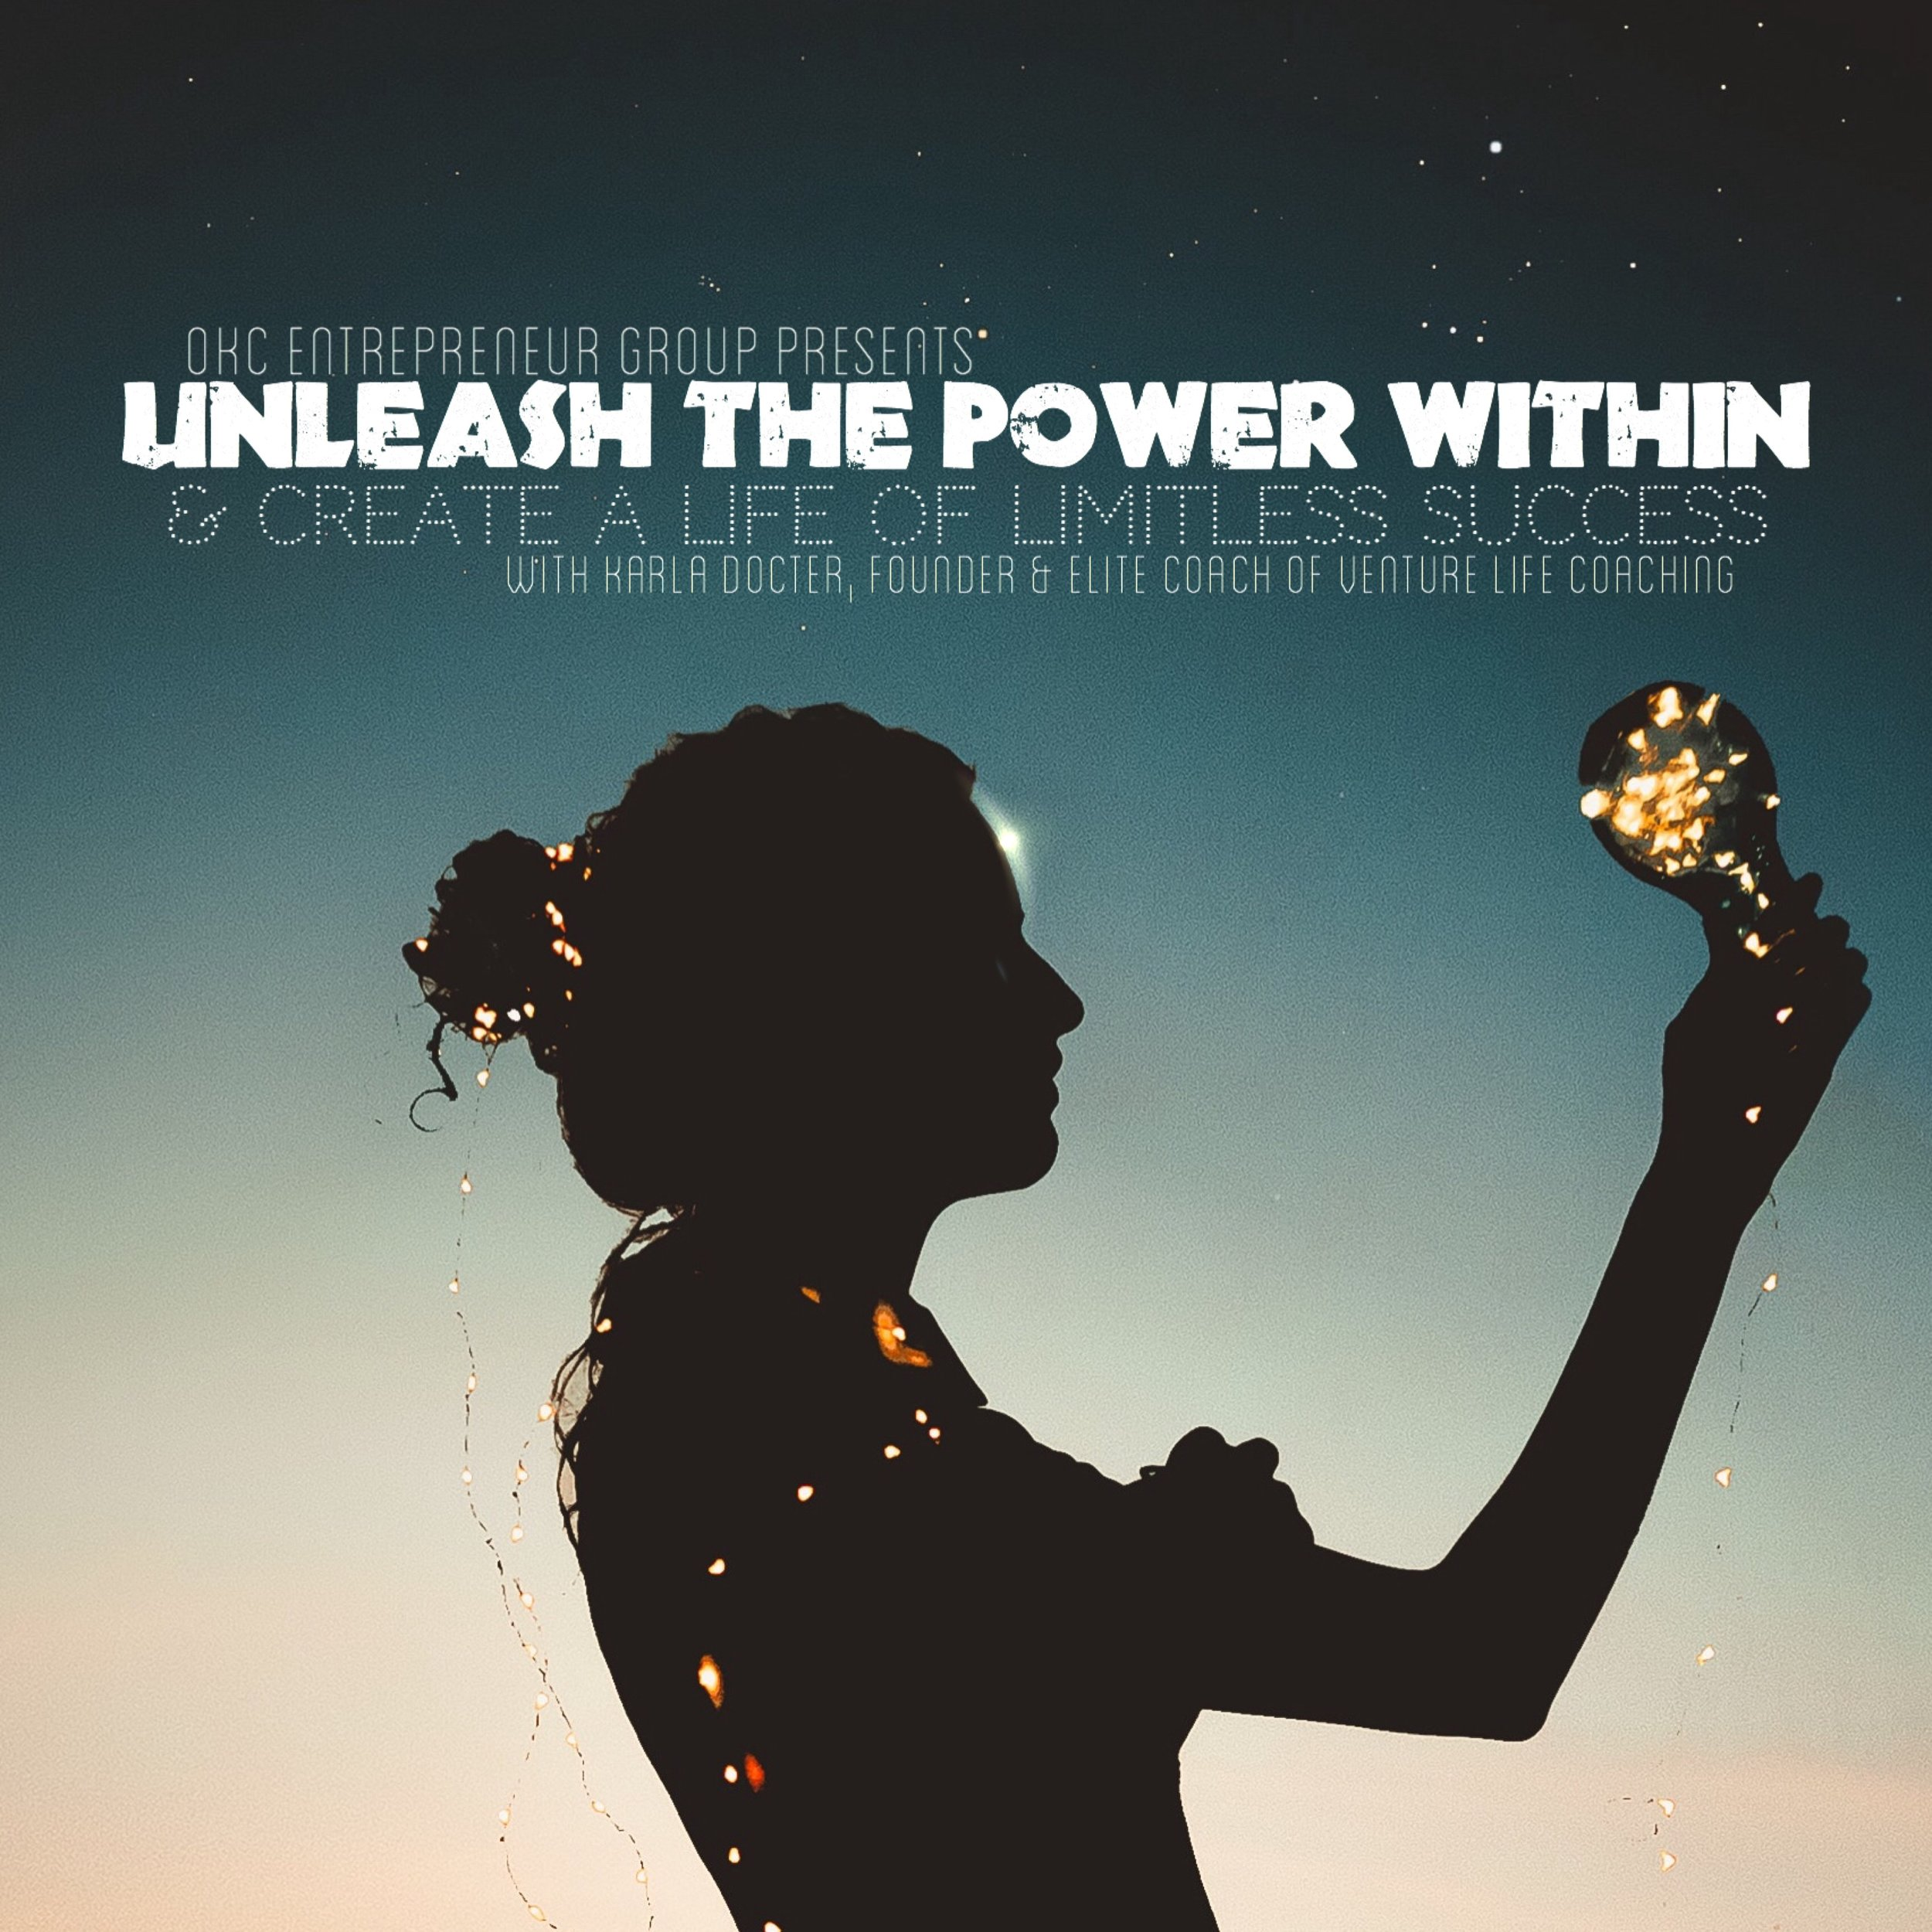 OKCEG Karla Docter - Unleash the Power Within and Create a Life of Limitless Success! SQ.jpg